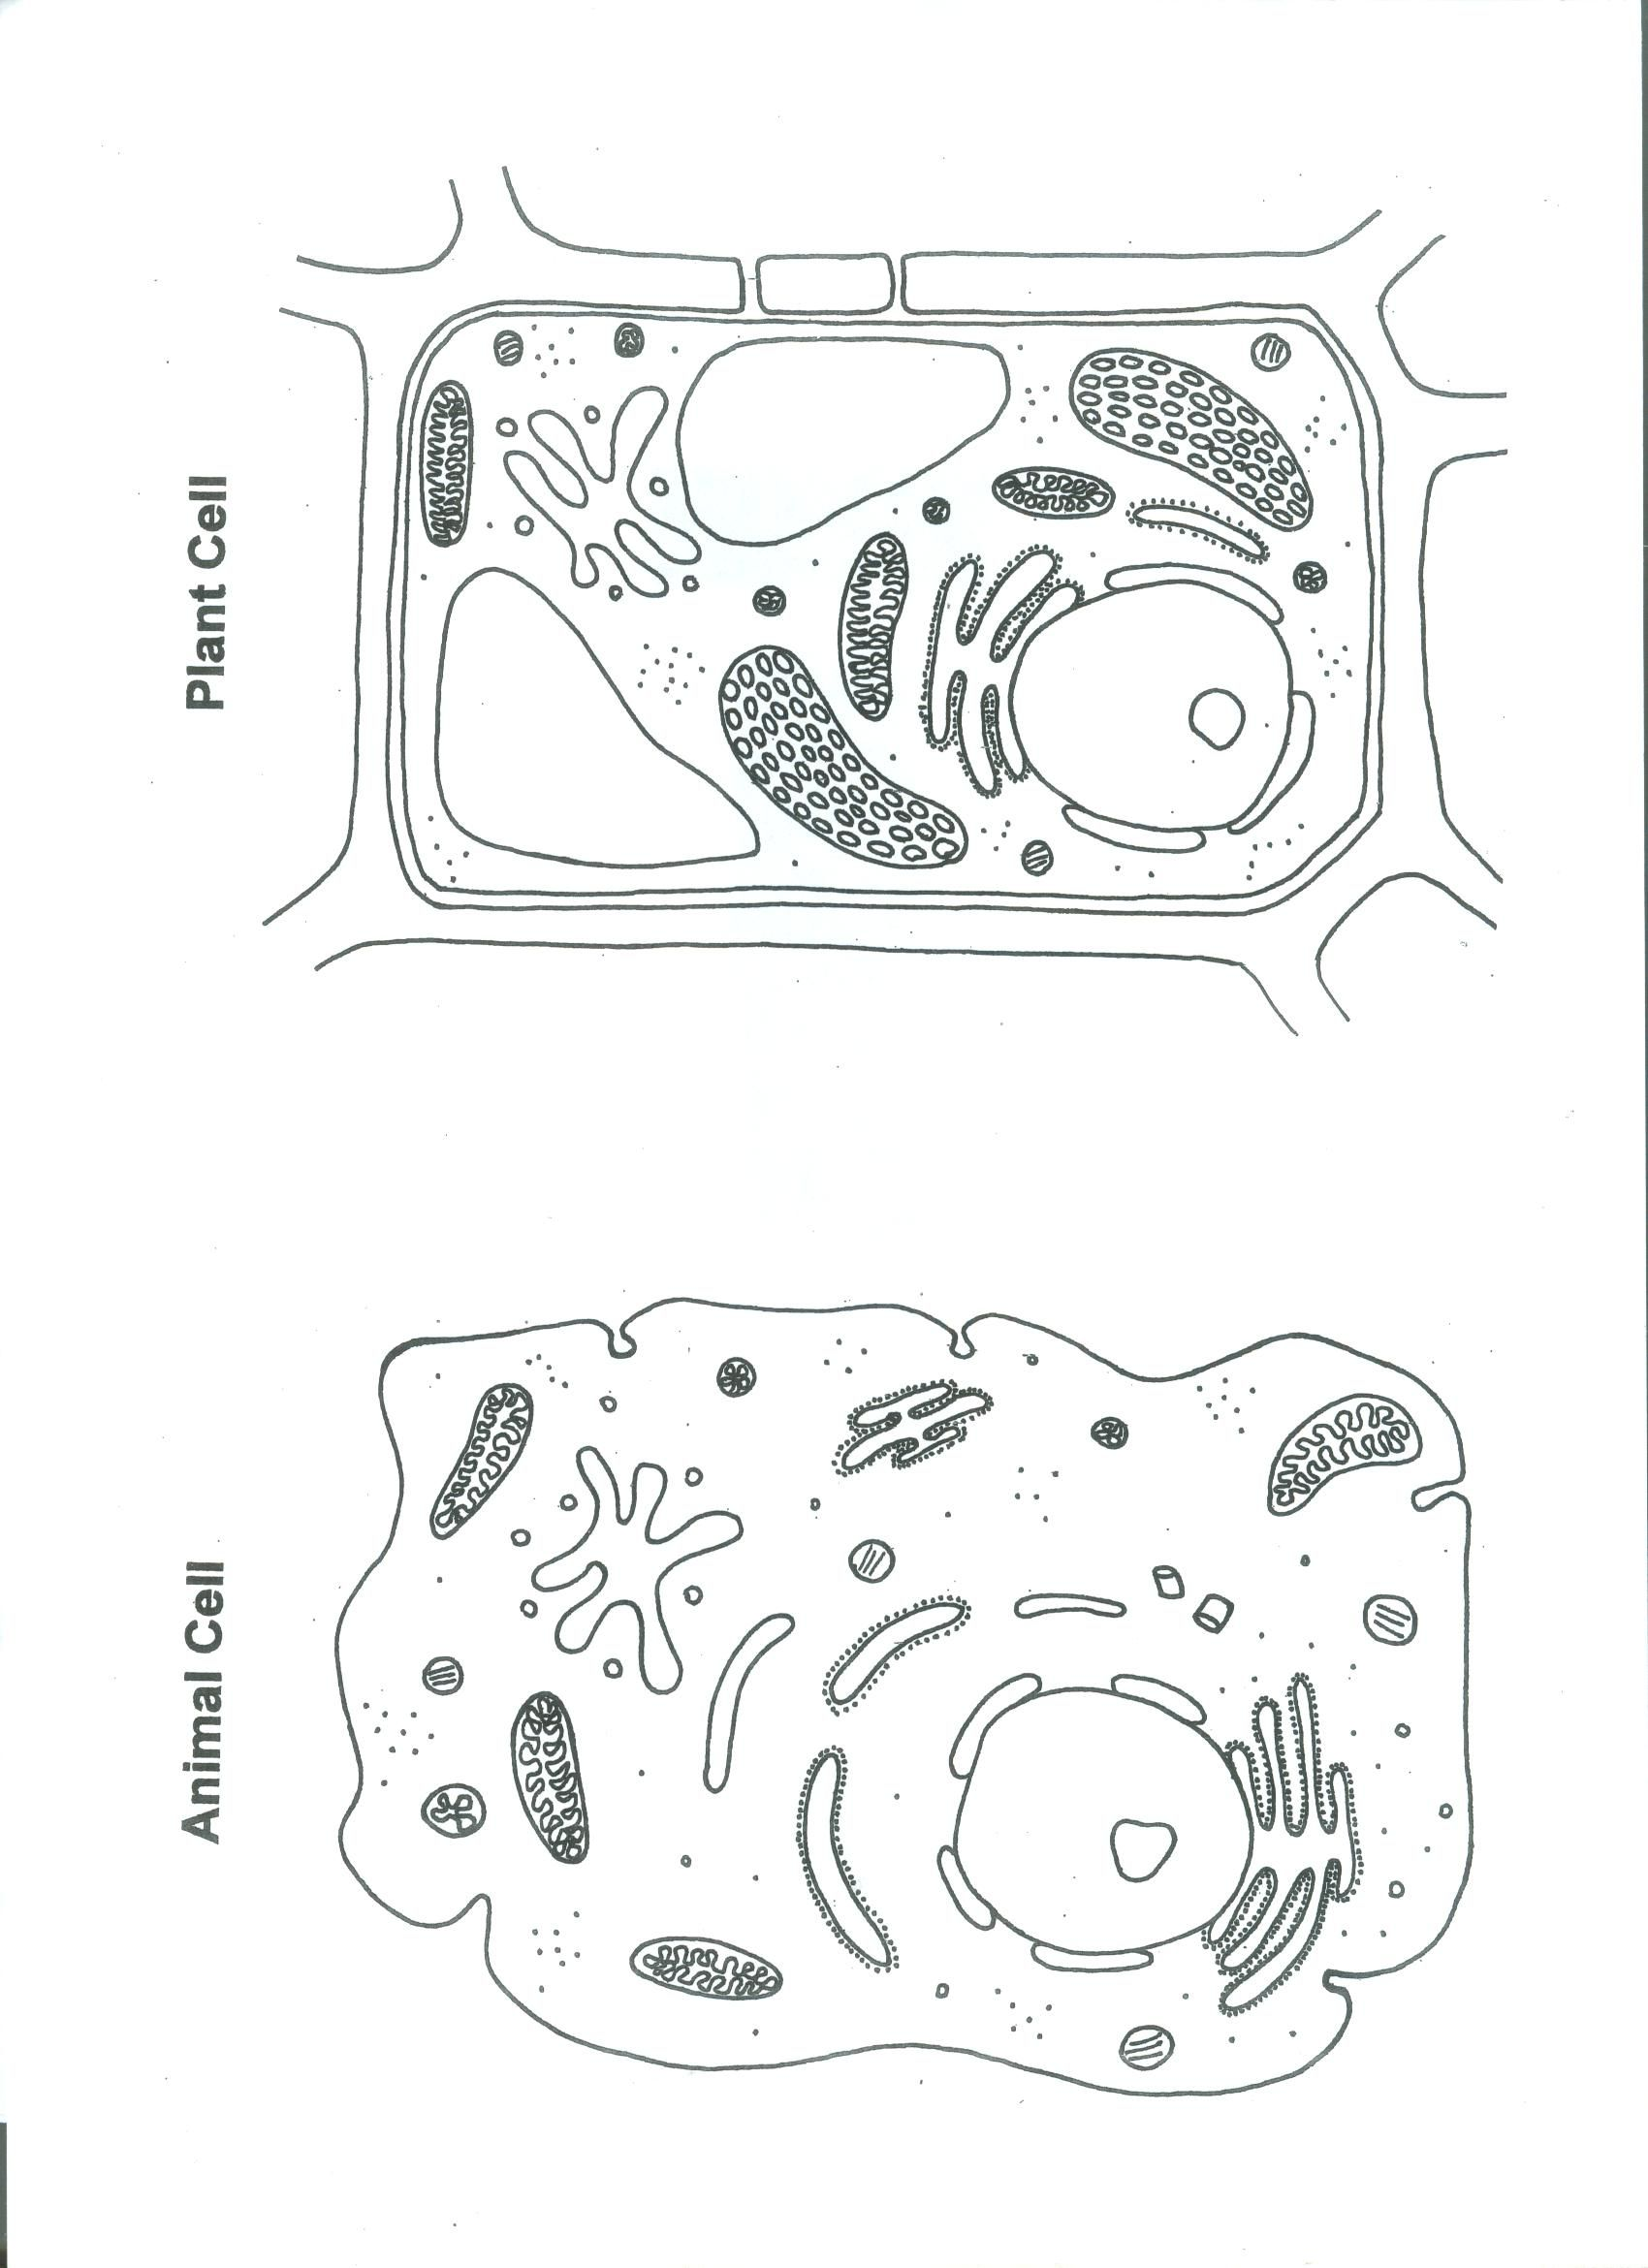 plant animal cell - Recherche Google | yyy | Pinterest | Biología ...